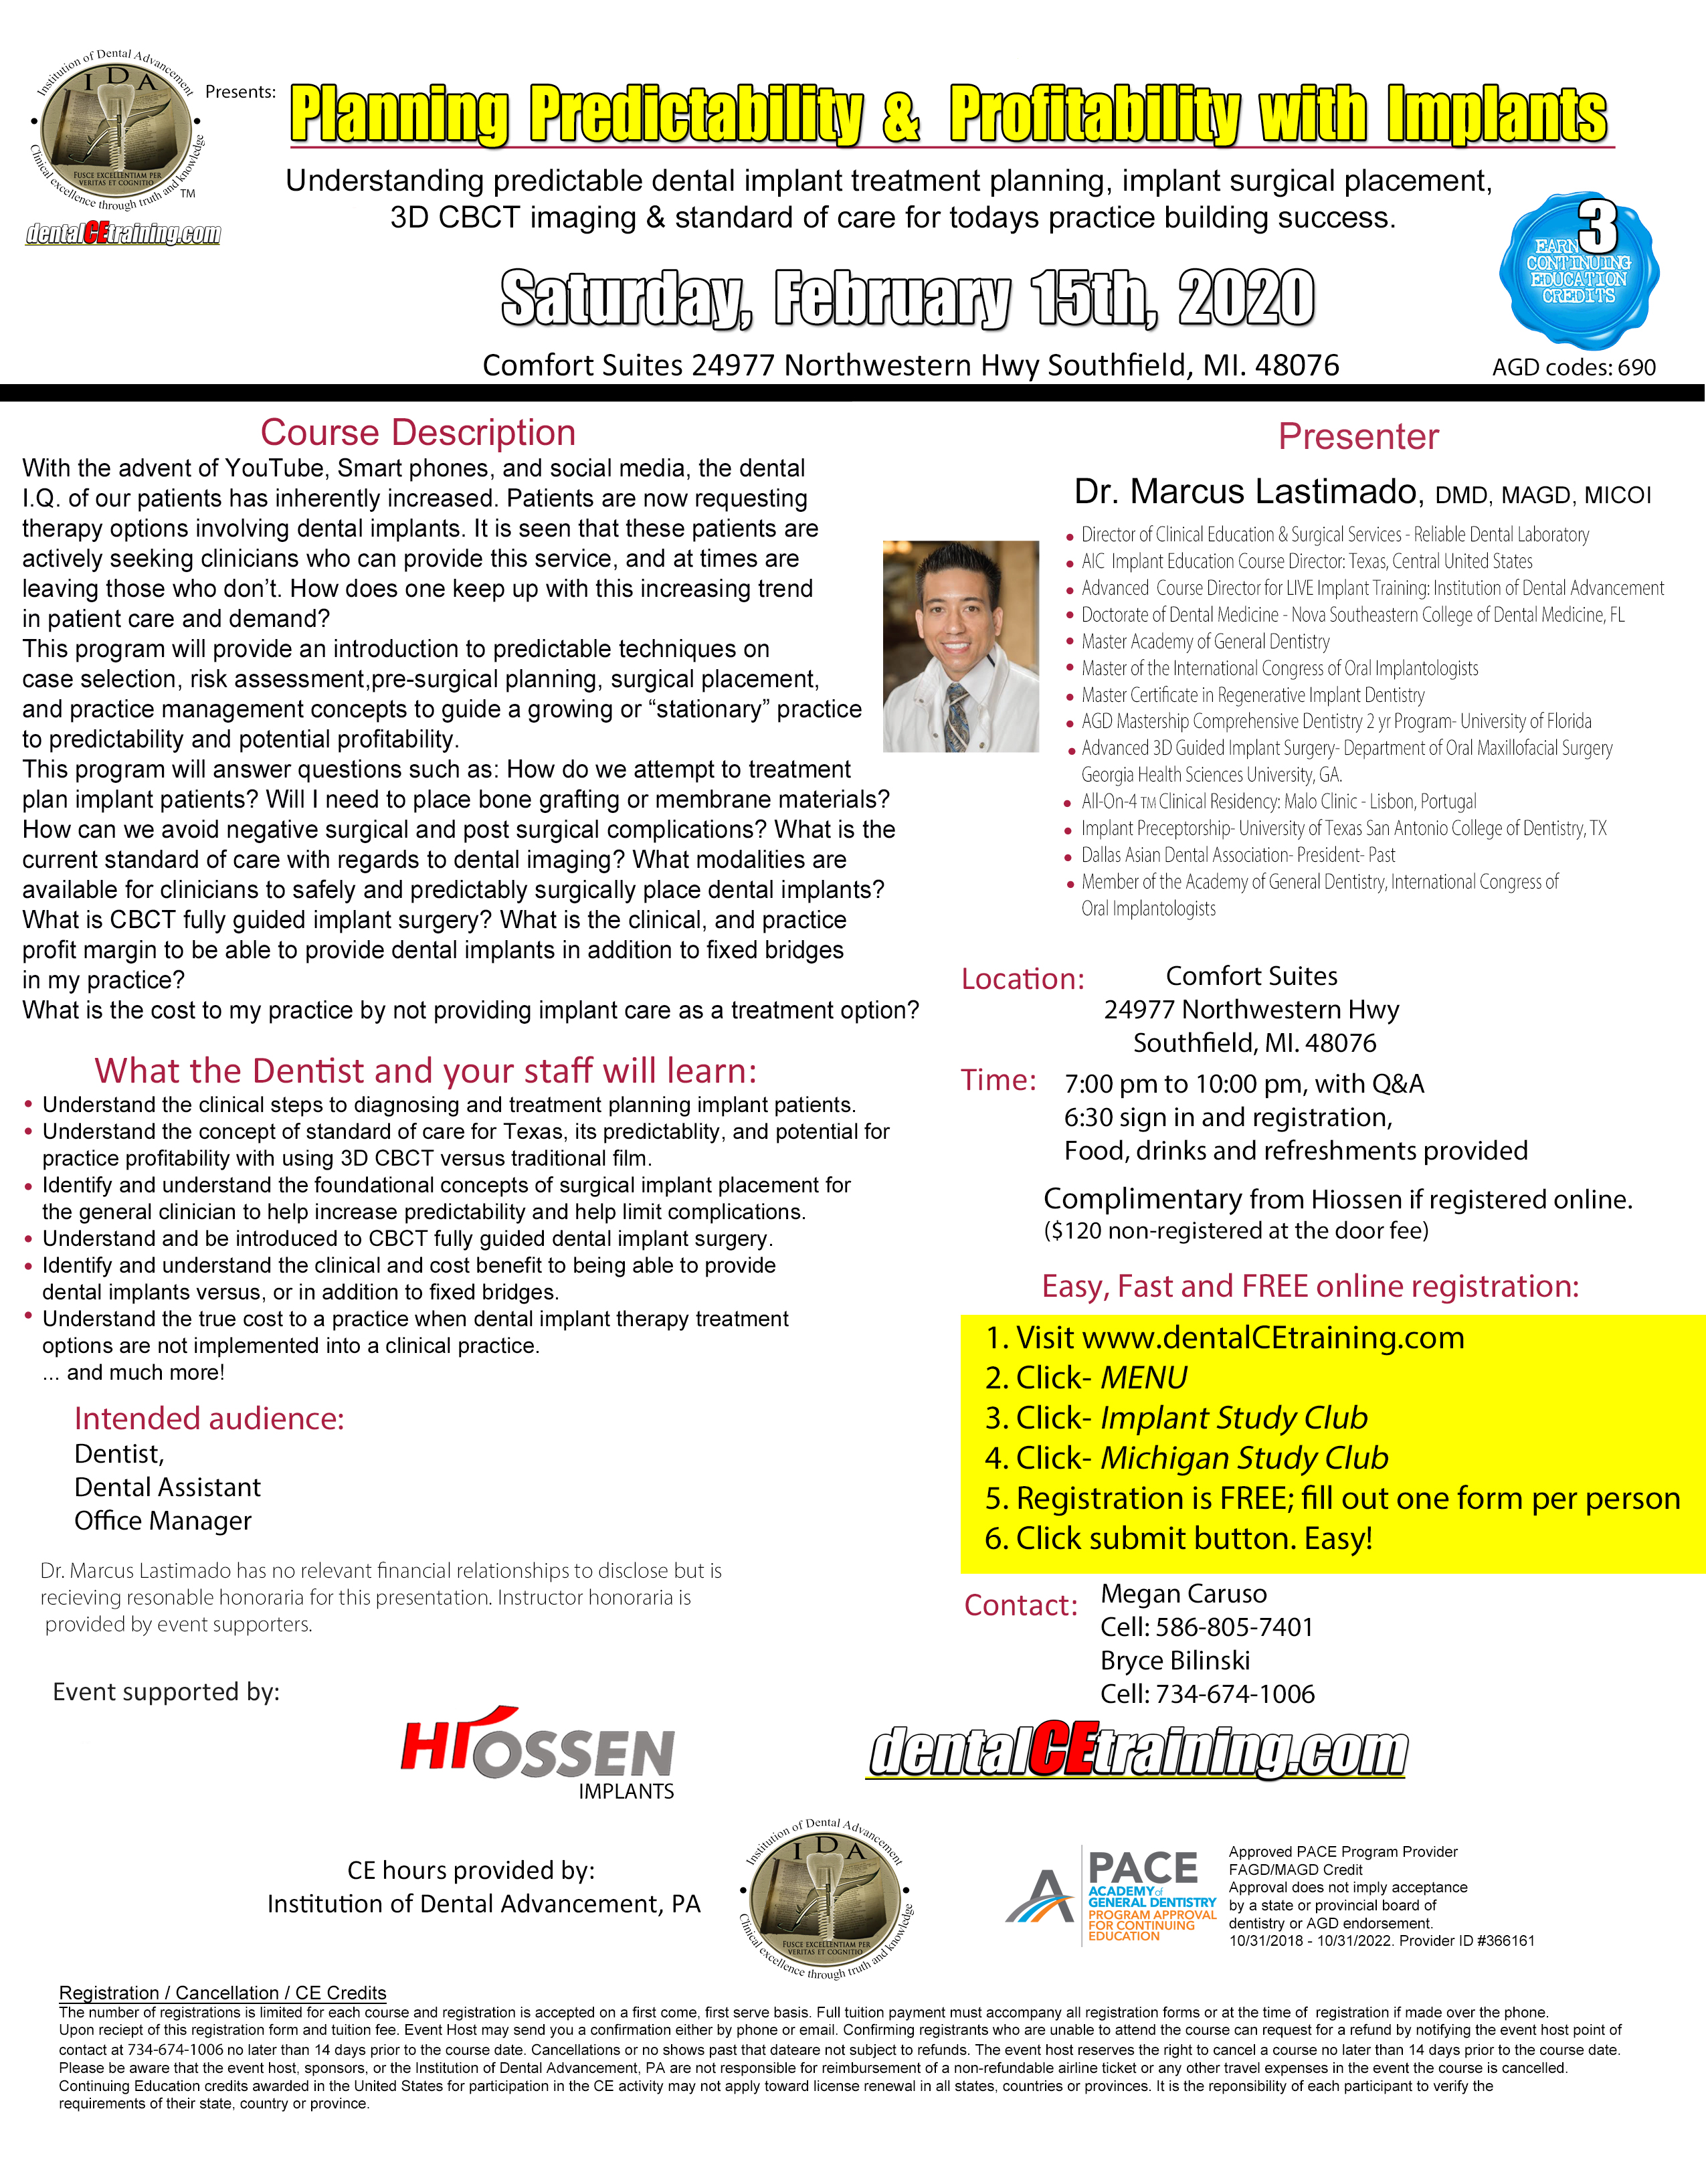 Michigan Detroit dental implant training course